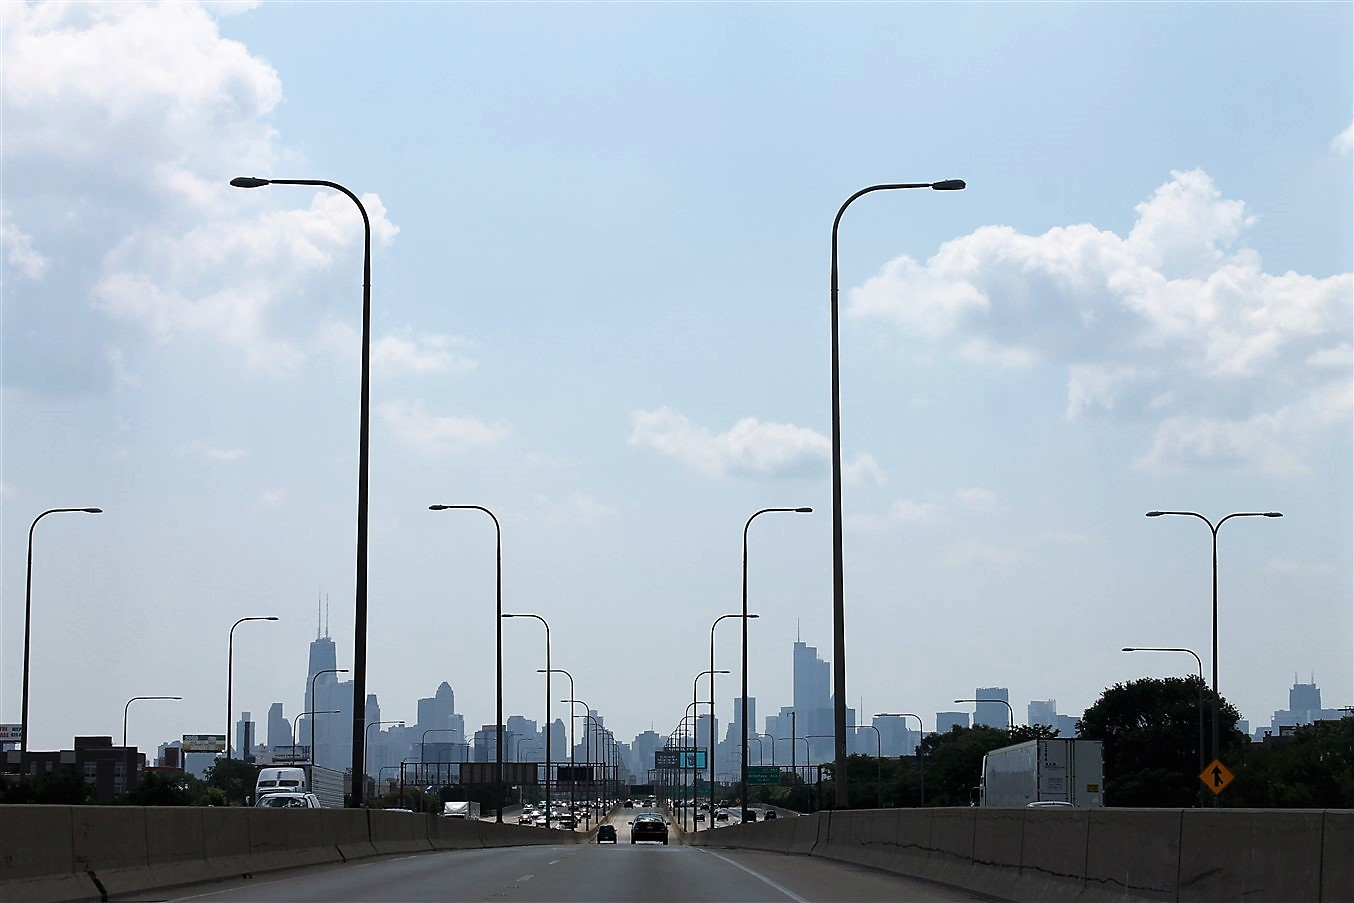 2012 07 15 82 Driving Through Chicago.jpg